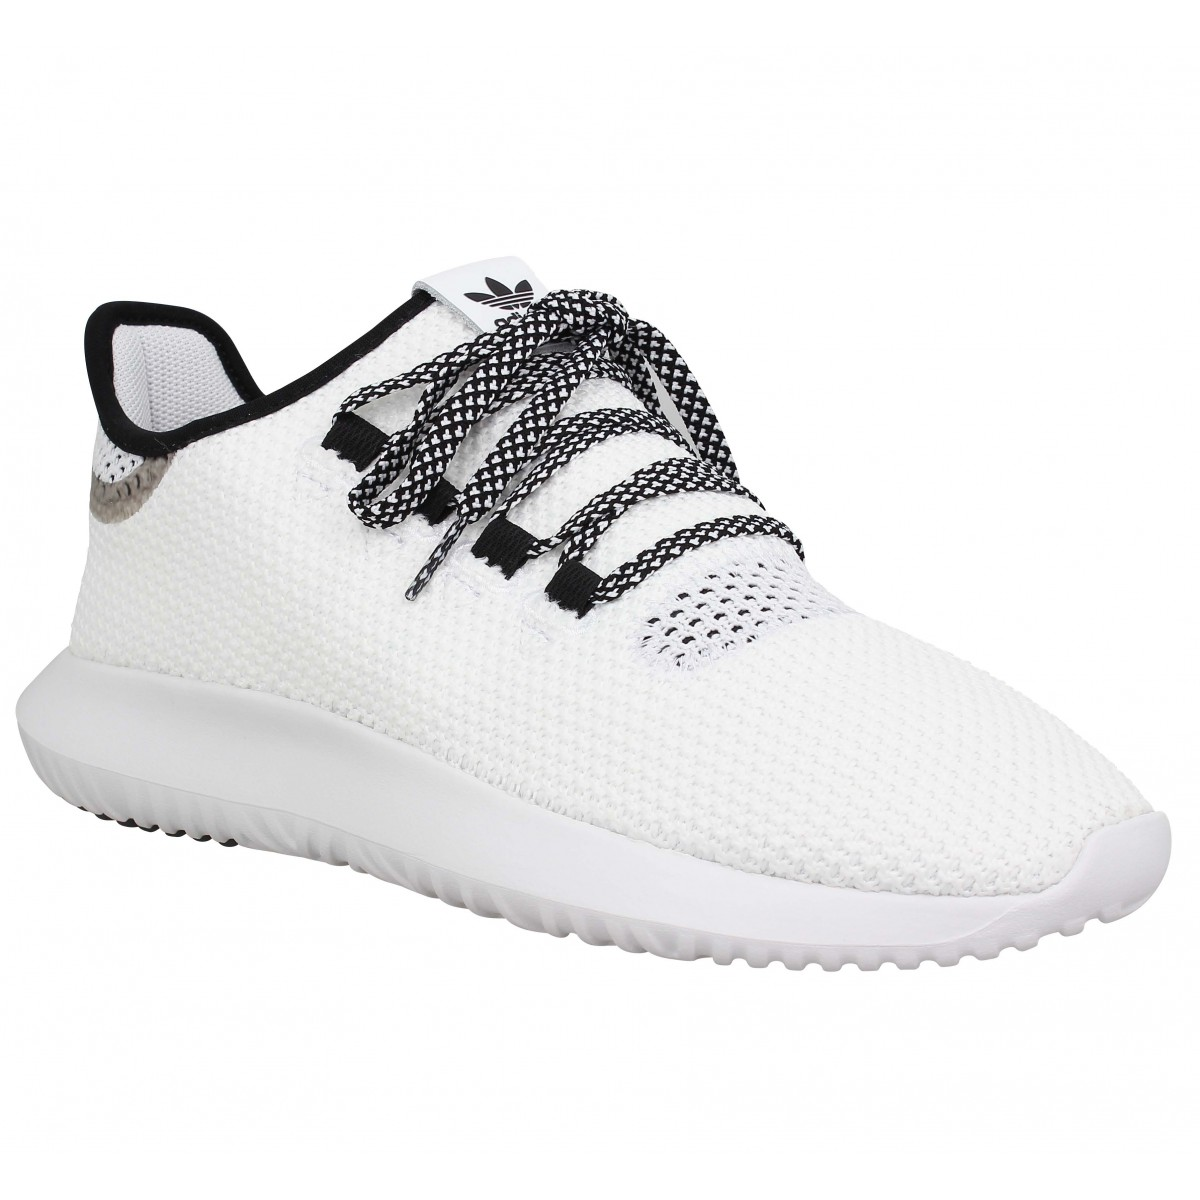 Baskets ADIDAS Tubular Shadow toile Homme Blanc